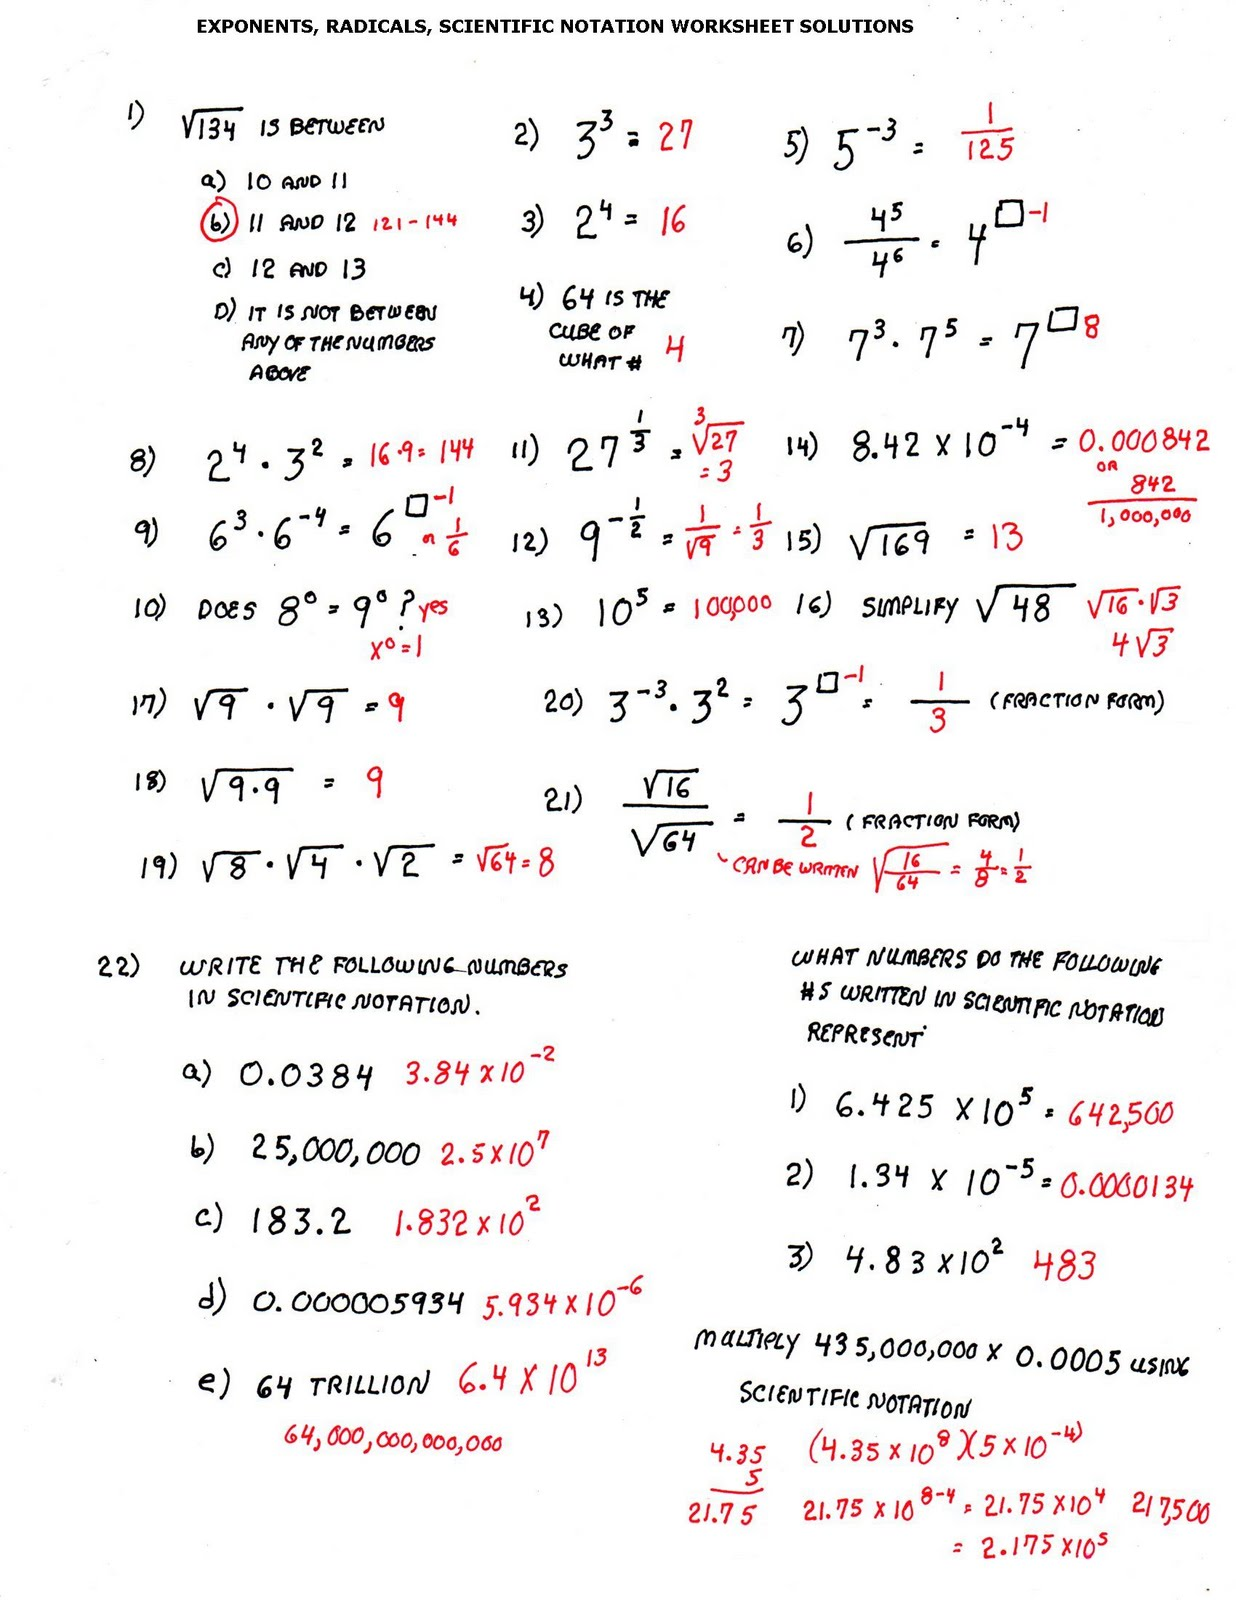 math worksheet : cobb adult ed math solutions to last 3 worksheets : Math Scientific Notation Worksheets